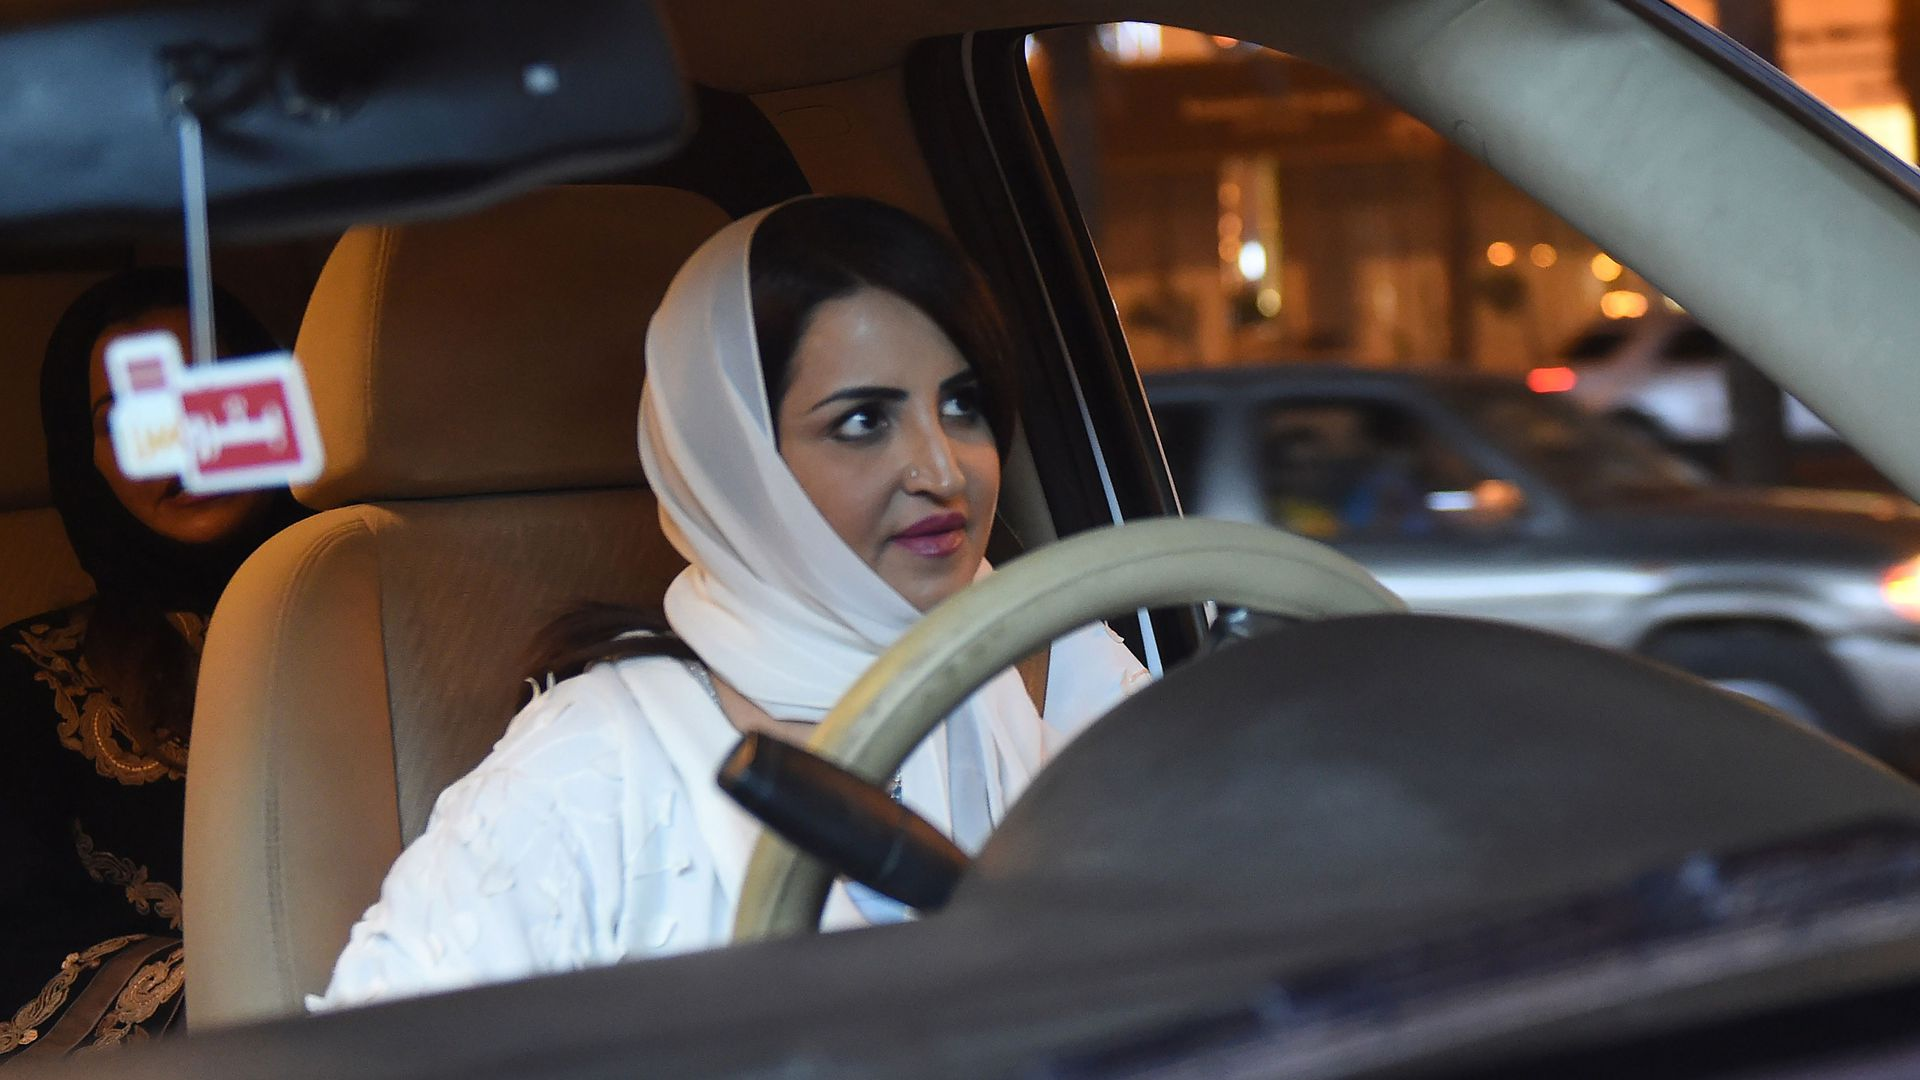 A Saudi woman behind the wheel of a car.